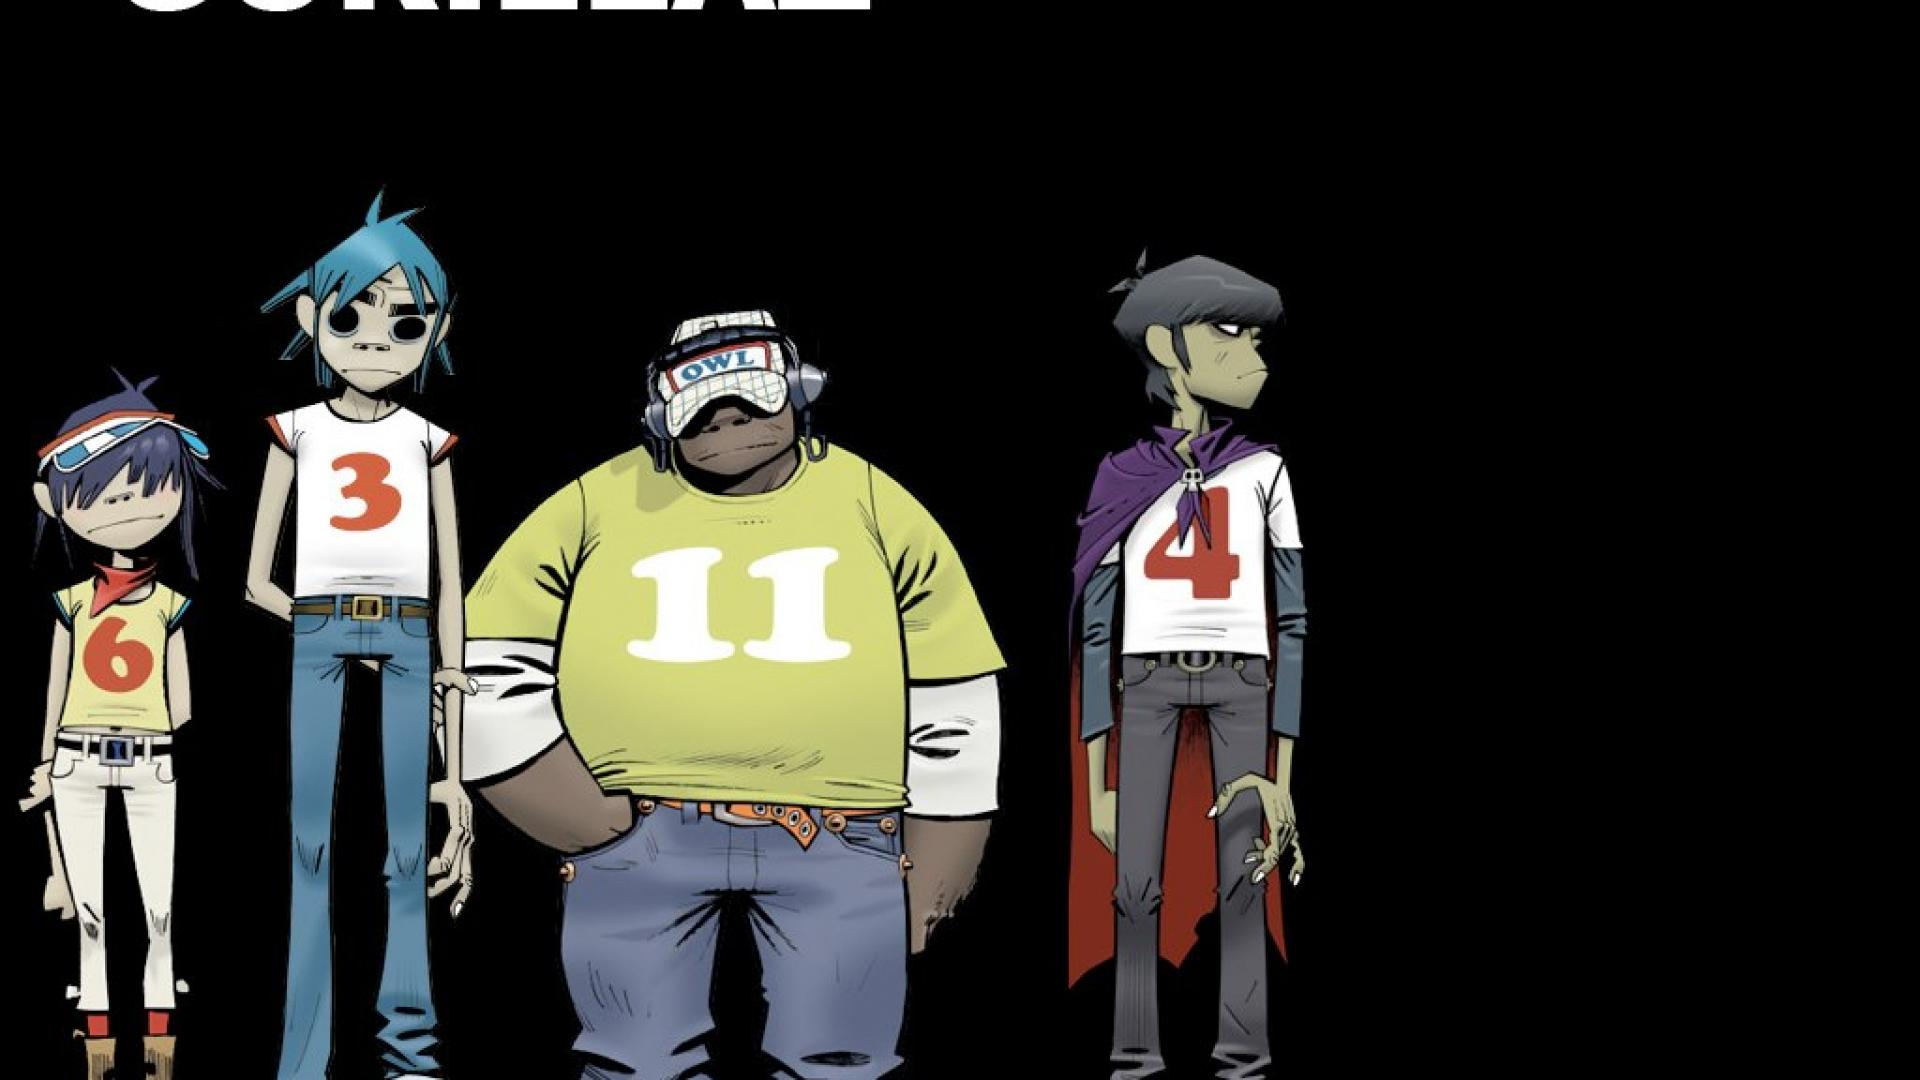 Free Download Gorillaz Bands Music Hd Wallpaper 460 Hq